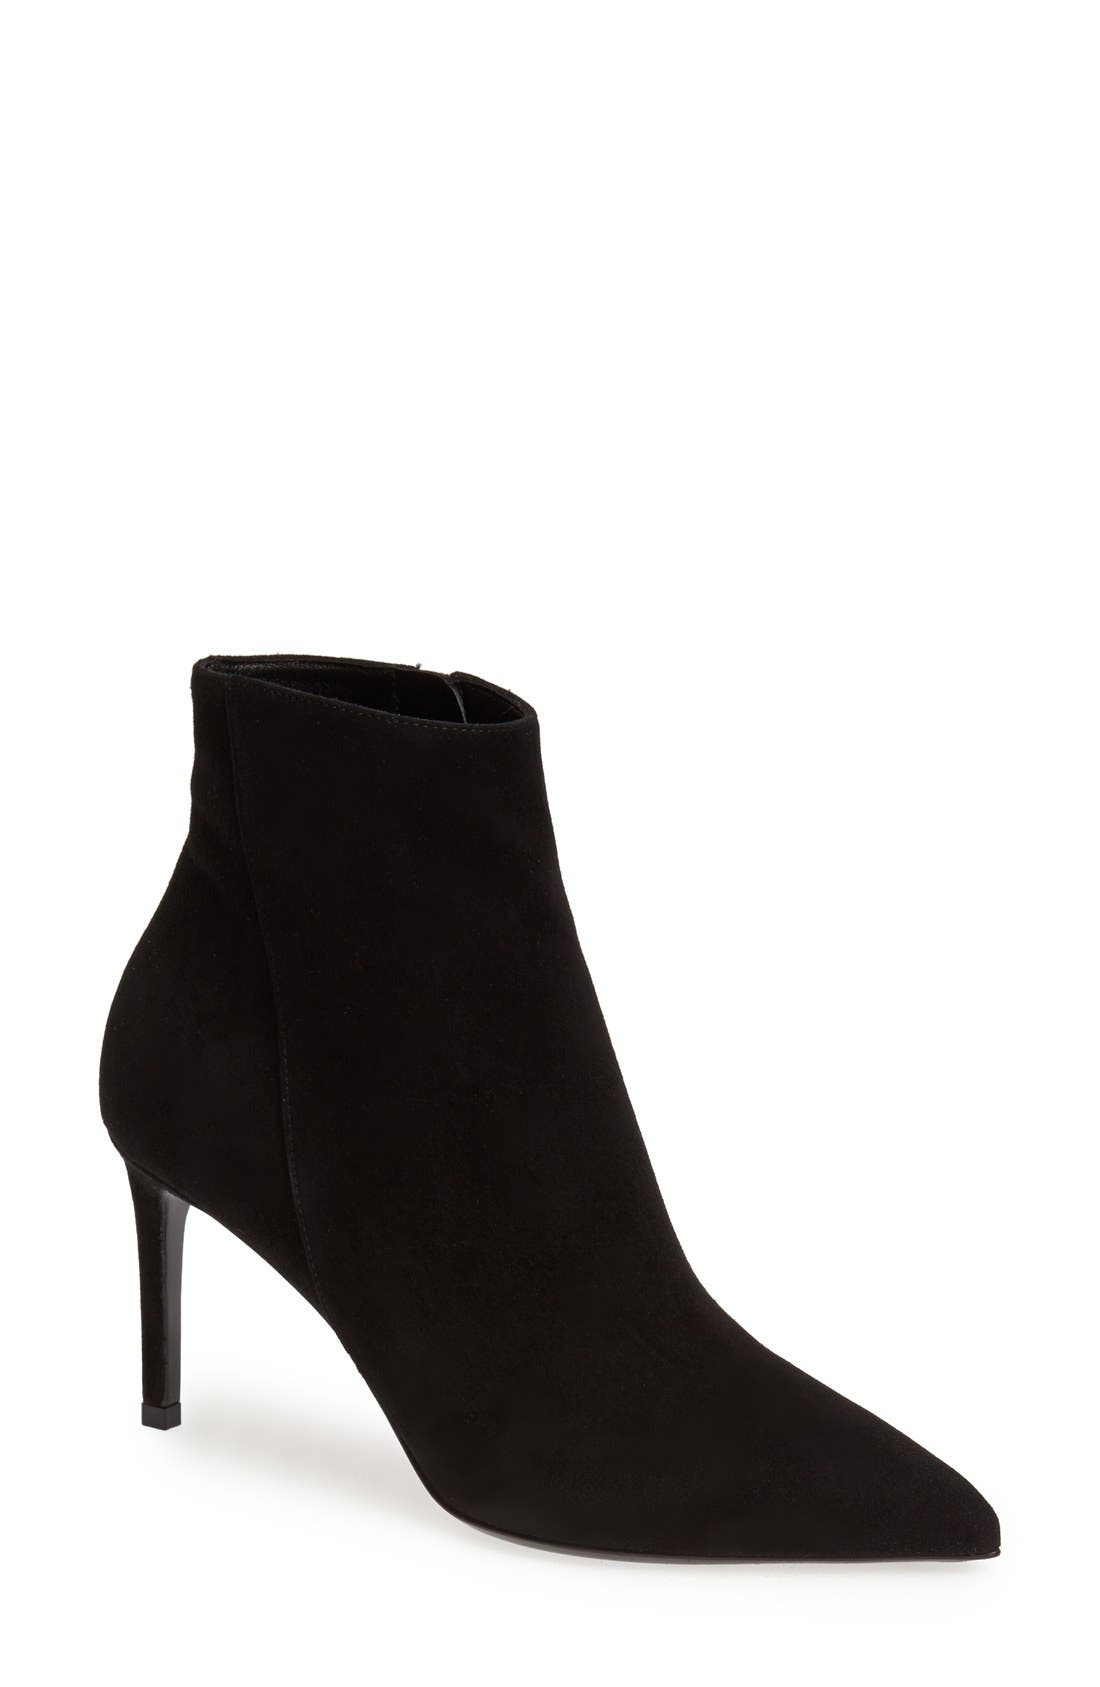 Alternate Image 1 Selected - Saint Laurent Pointy Toe Bootie (Women)